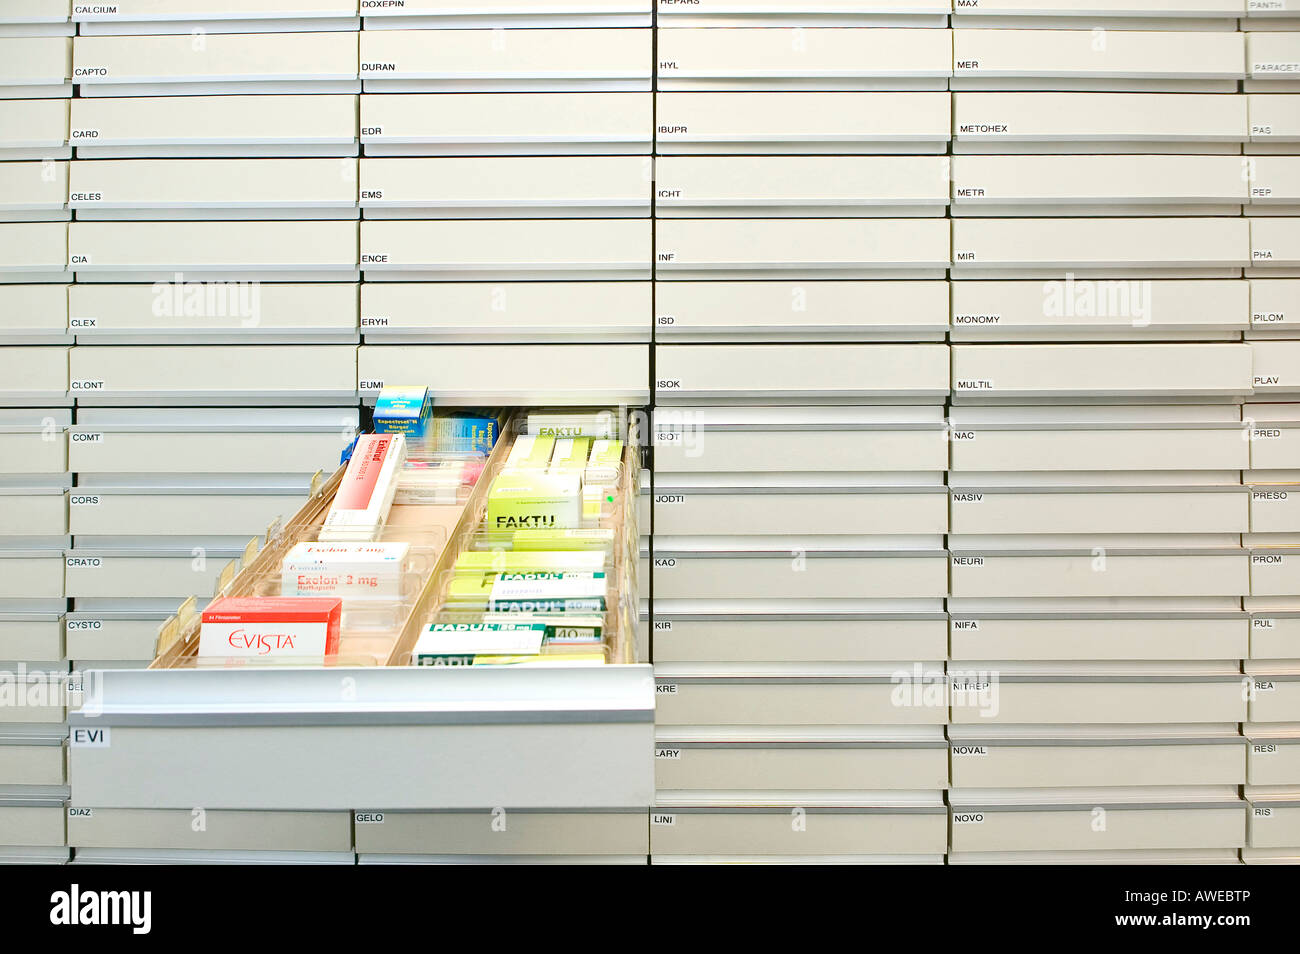 Health Store Pharmacy Specialist Stock Storage Drug Cabinet Pharmaceutical